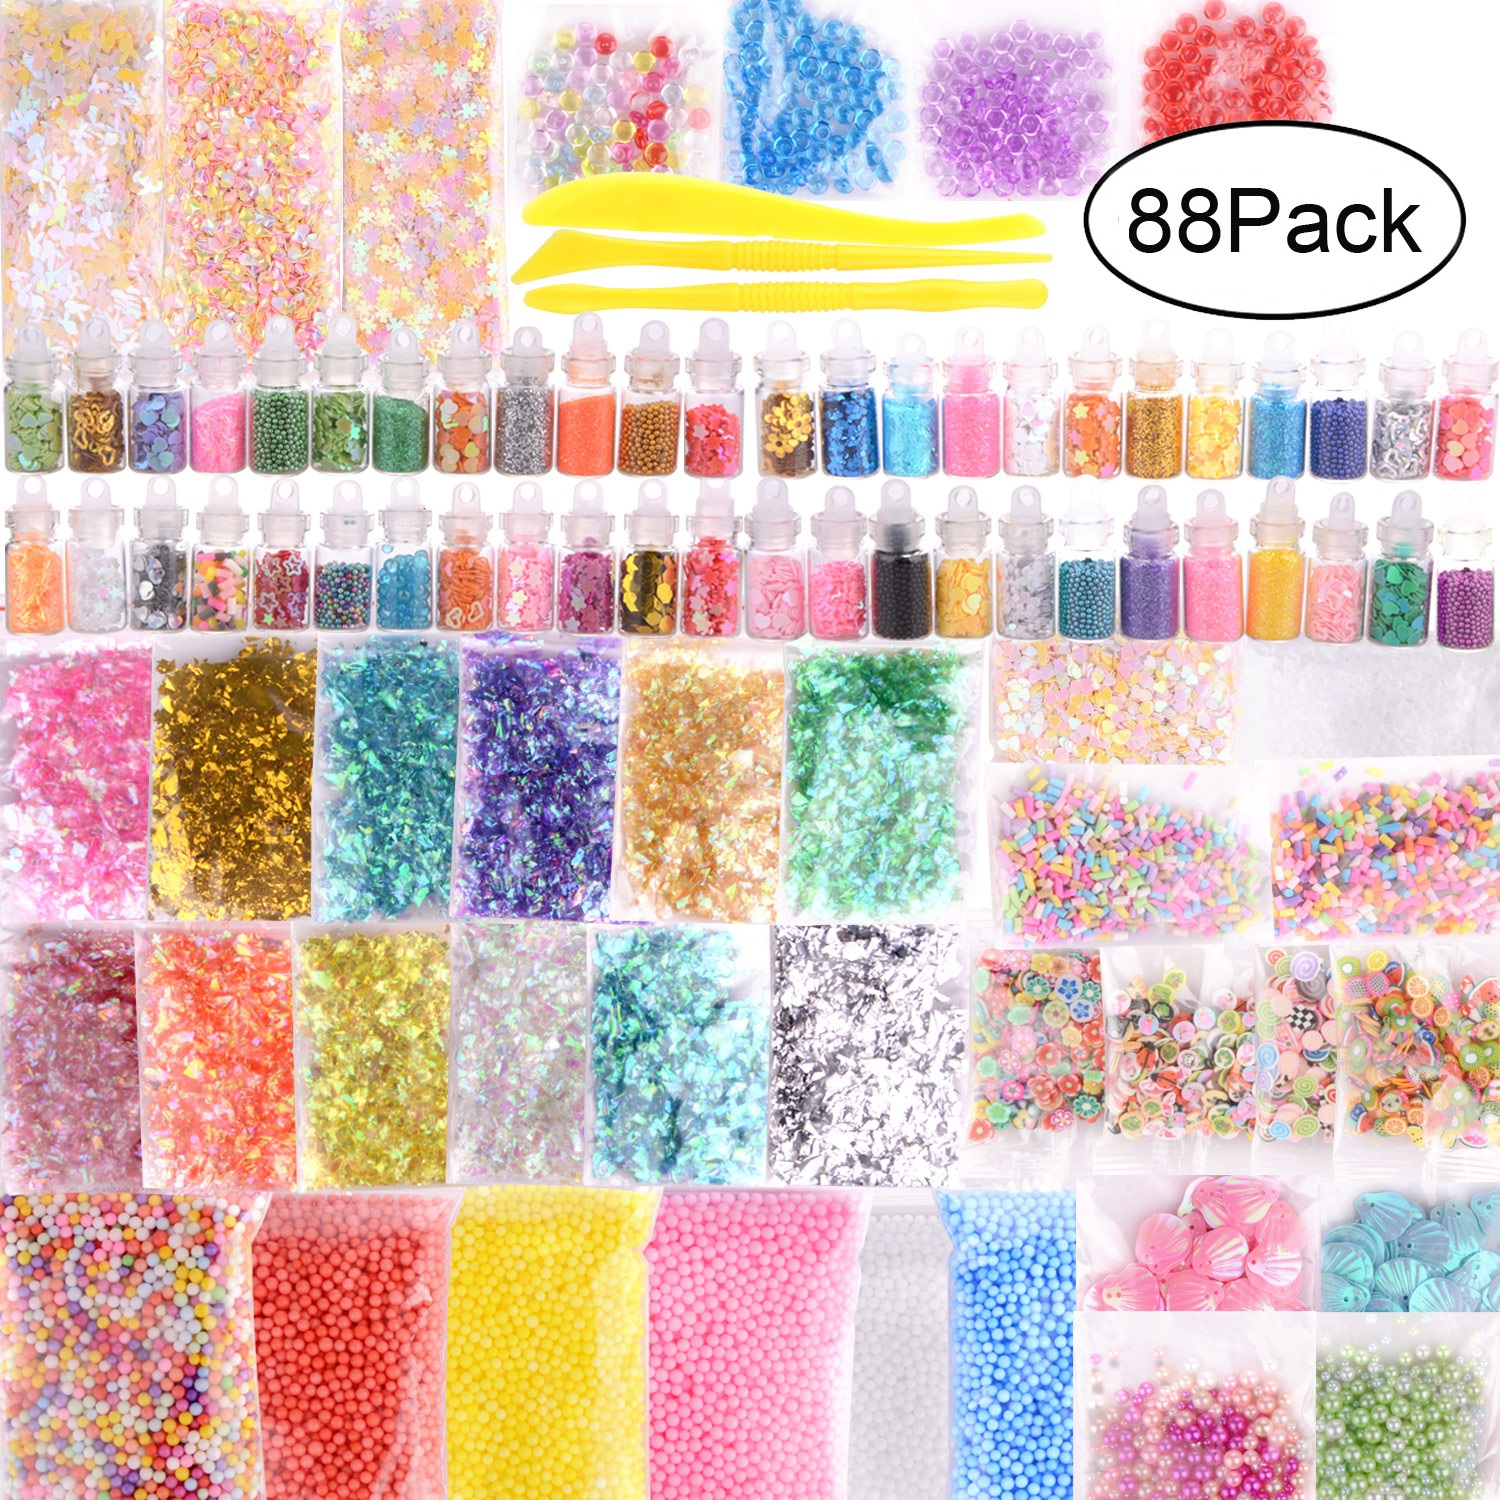 88Pcs 3D Fluffy Foam Slime Foam Balls Kids Toys DIY Craft Slime Supplies Kit Floam Beads Glitter Slices Rainbow Pearl